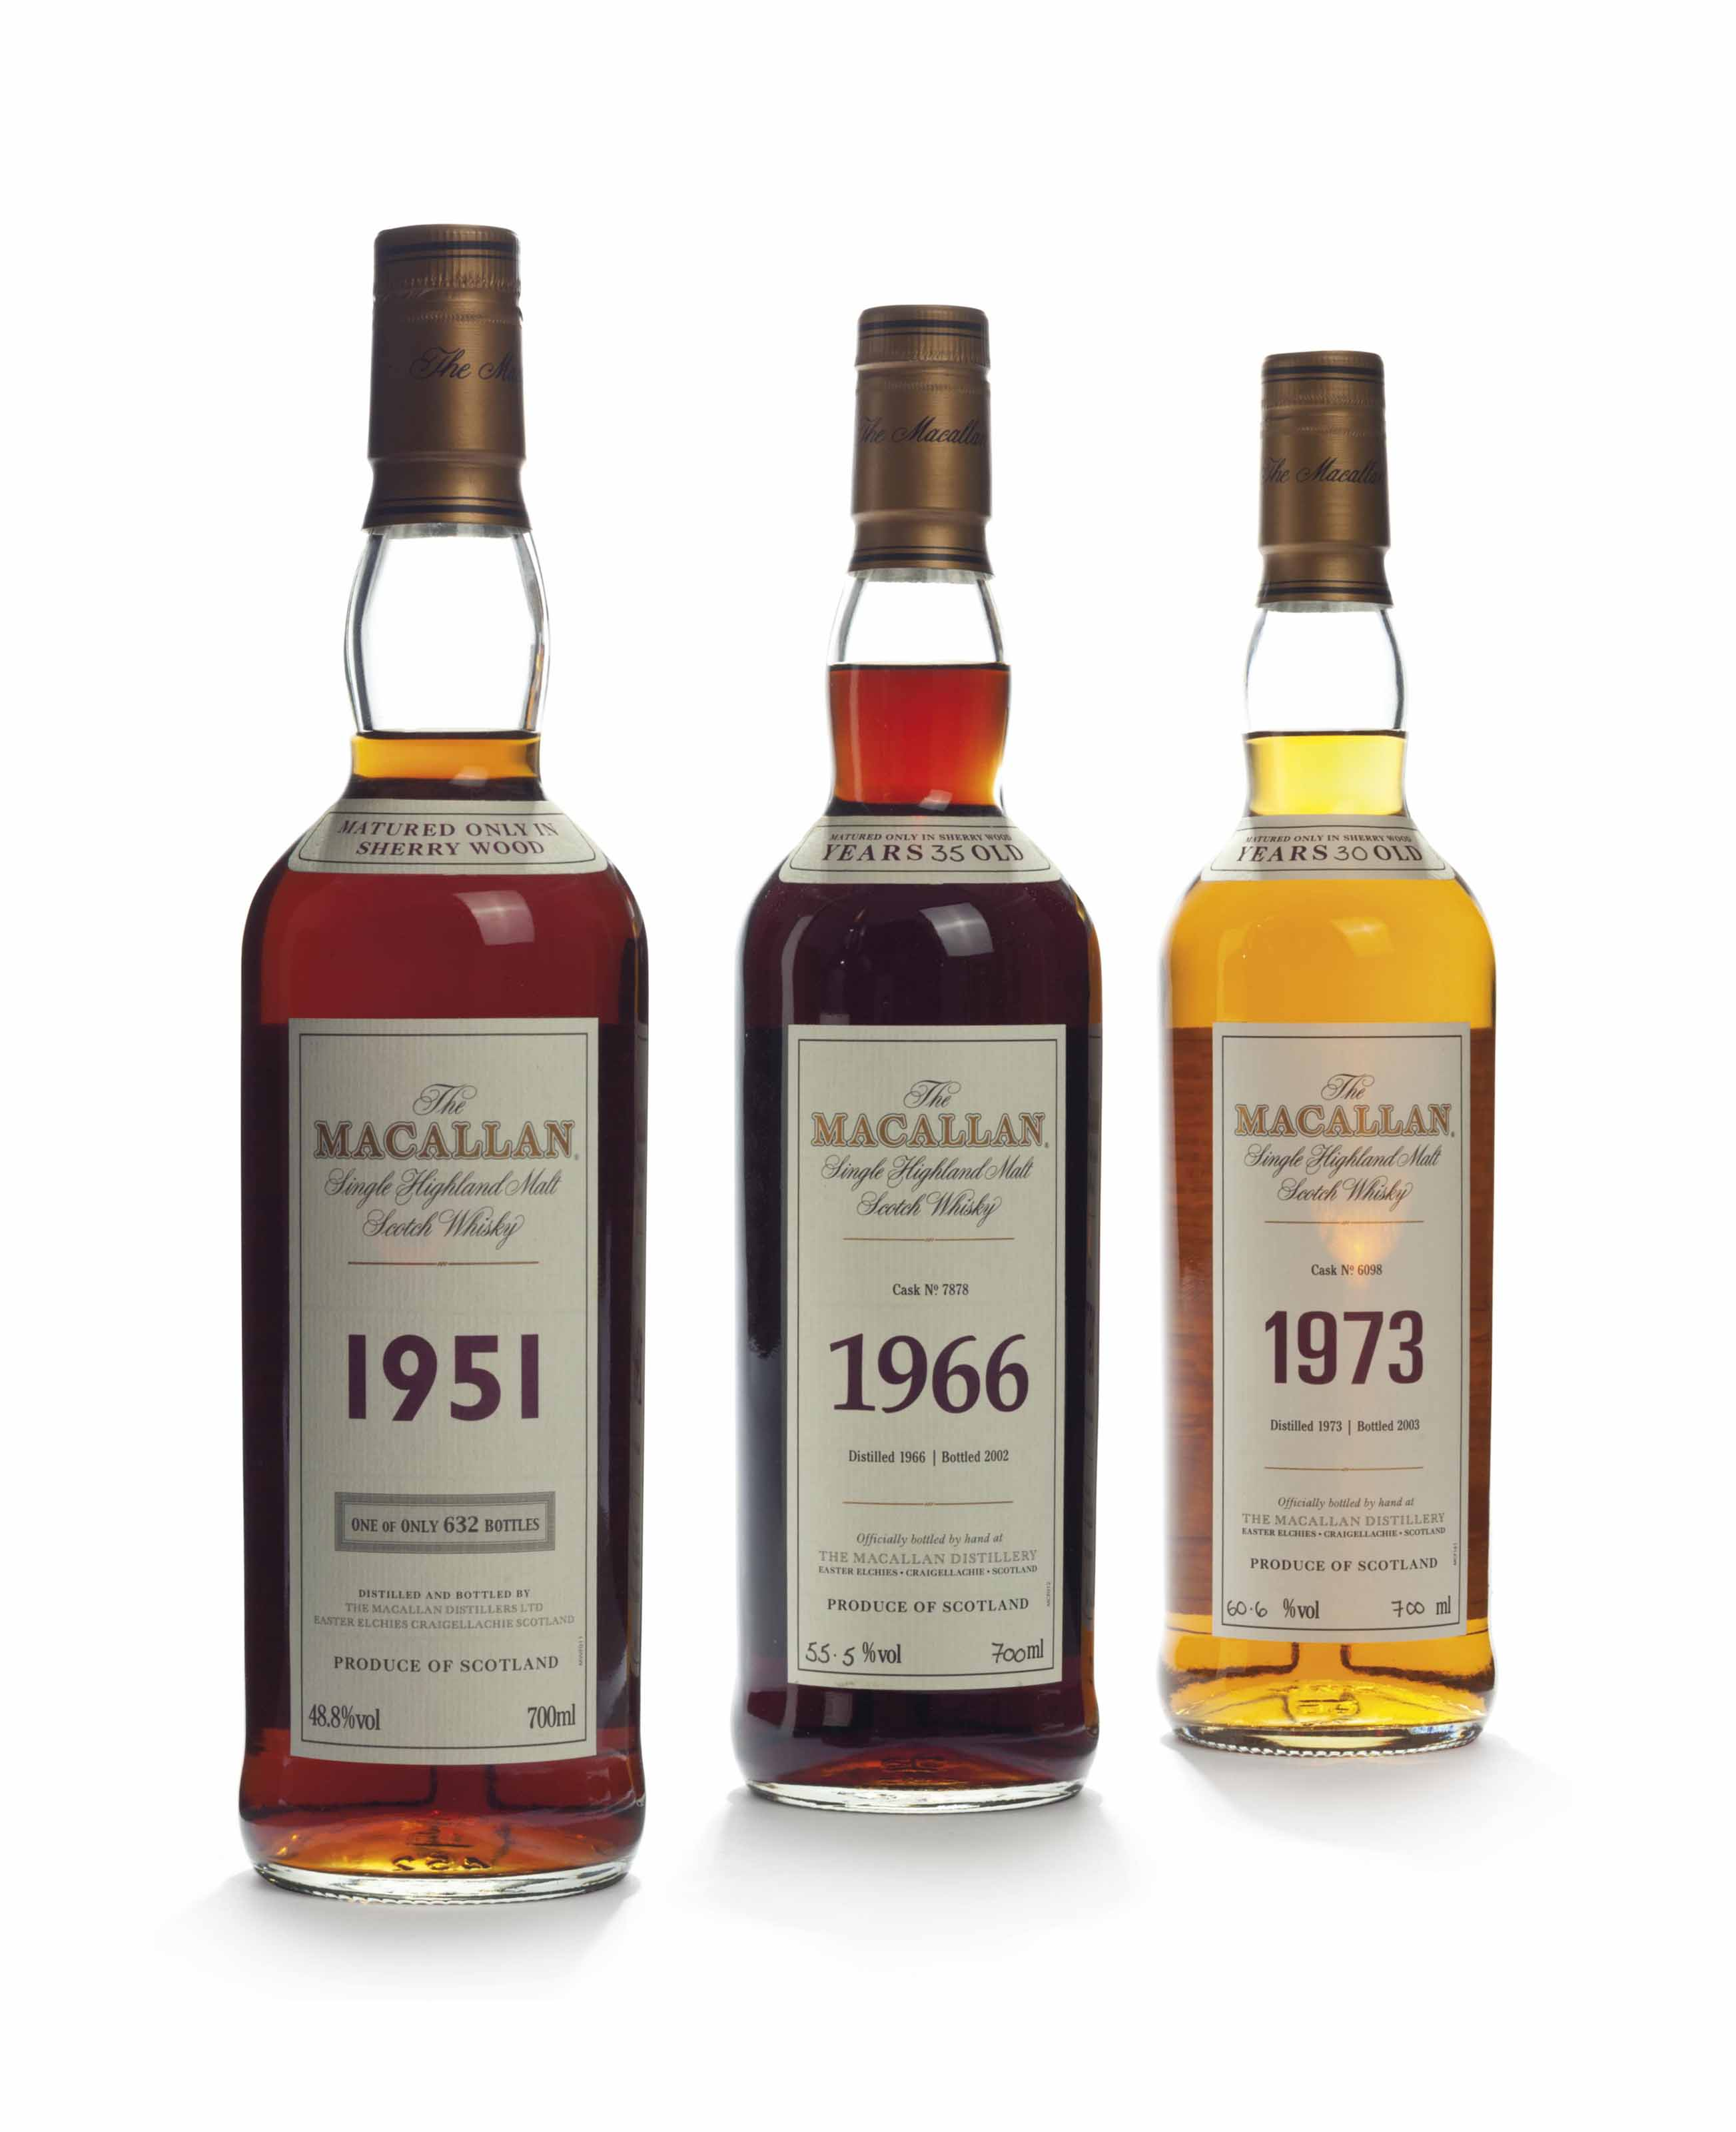 The Macallan, Fine and Rare Collection 35 Year Old 1966